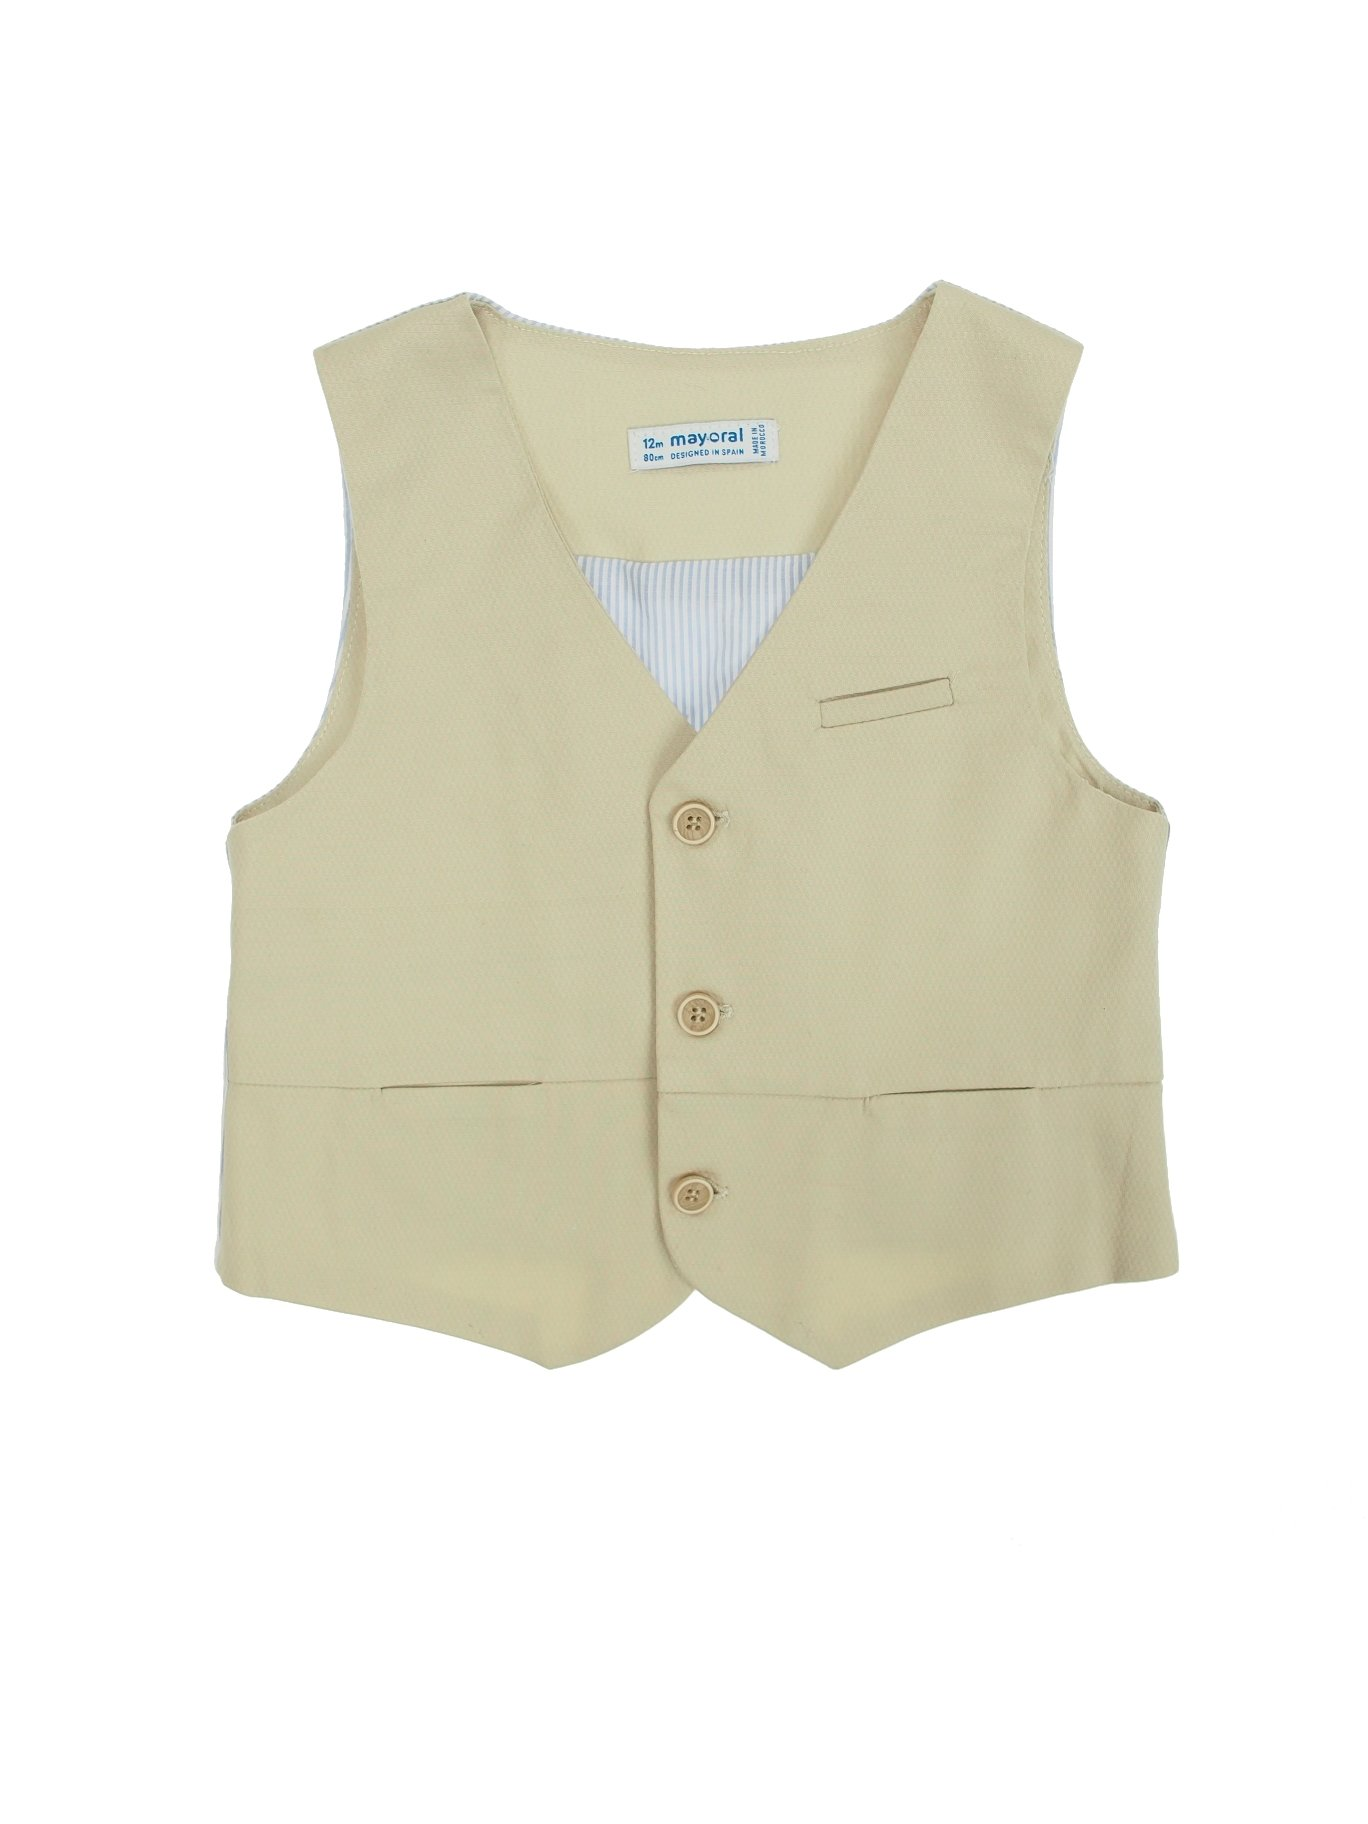 Mayoral 28-01442-073 - Dressy Strechy Vest for Baby-Boys 12 Months Beige by Mayoral